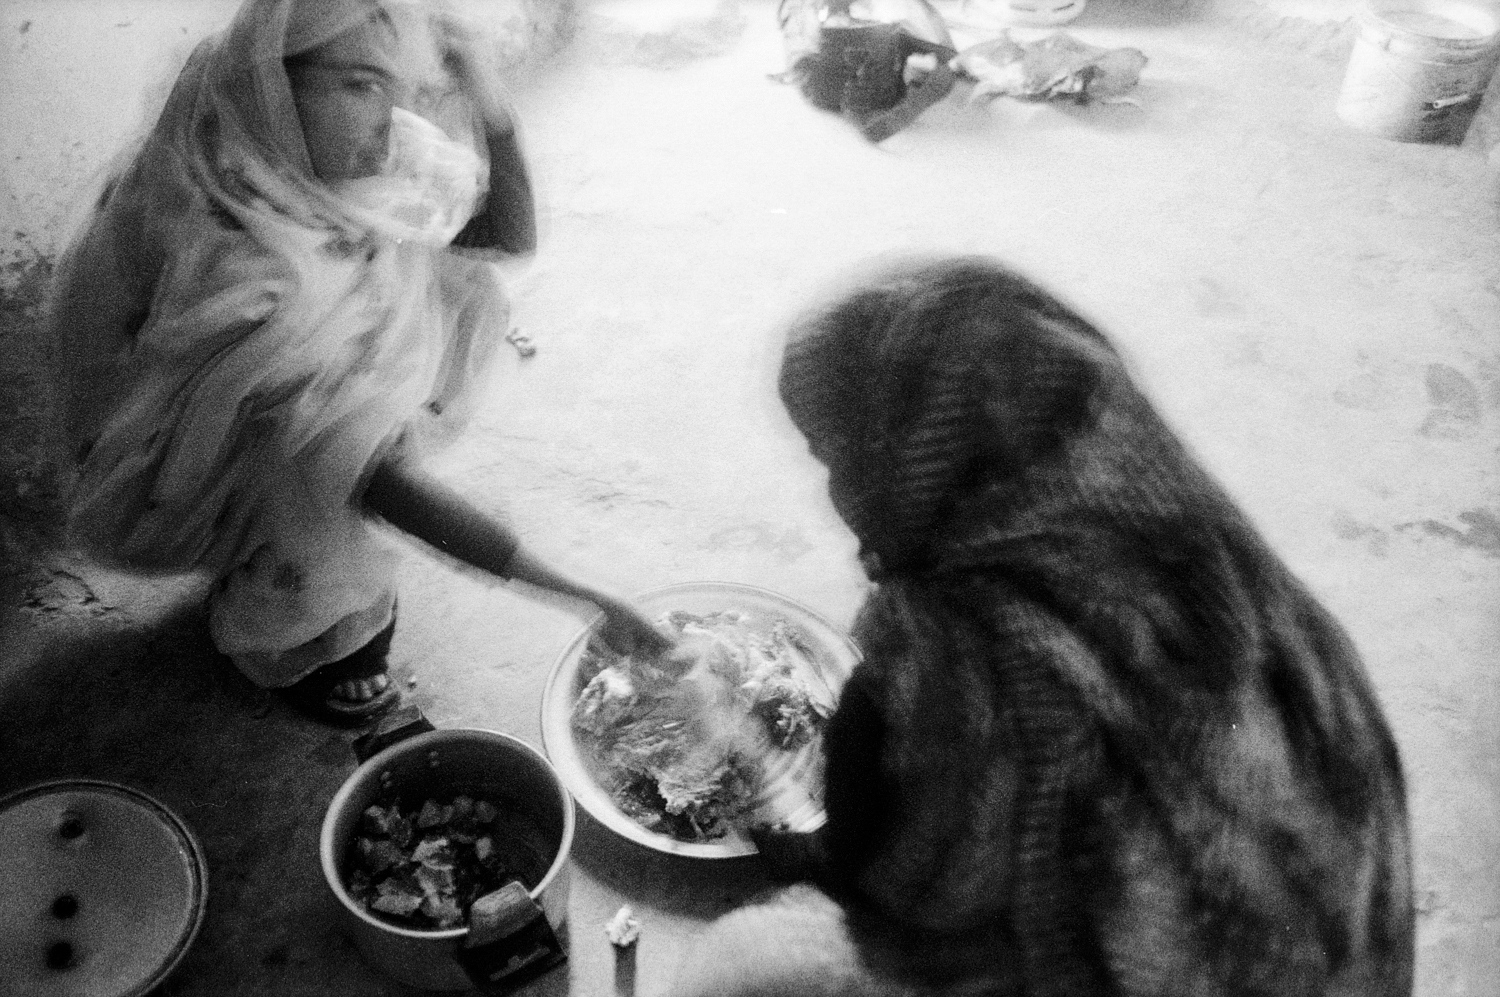 Two woman cocking at Sahrawi's refugee camps, Tindouf, Algeria.